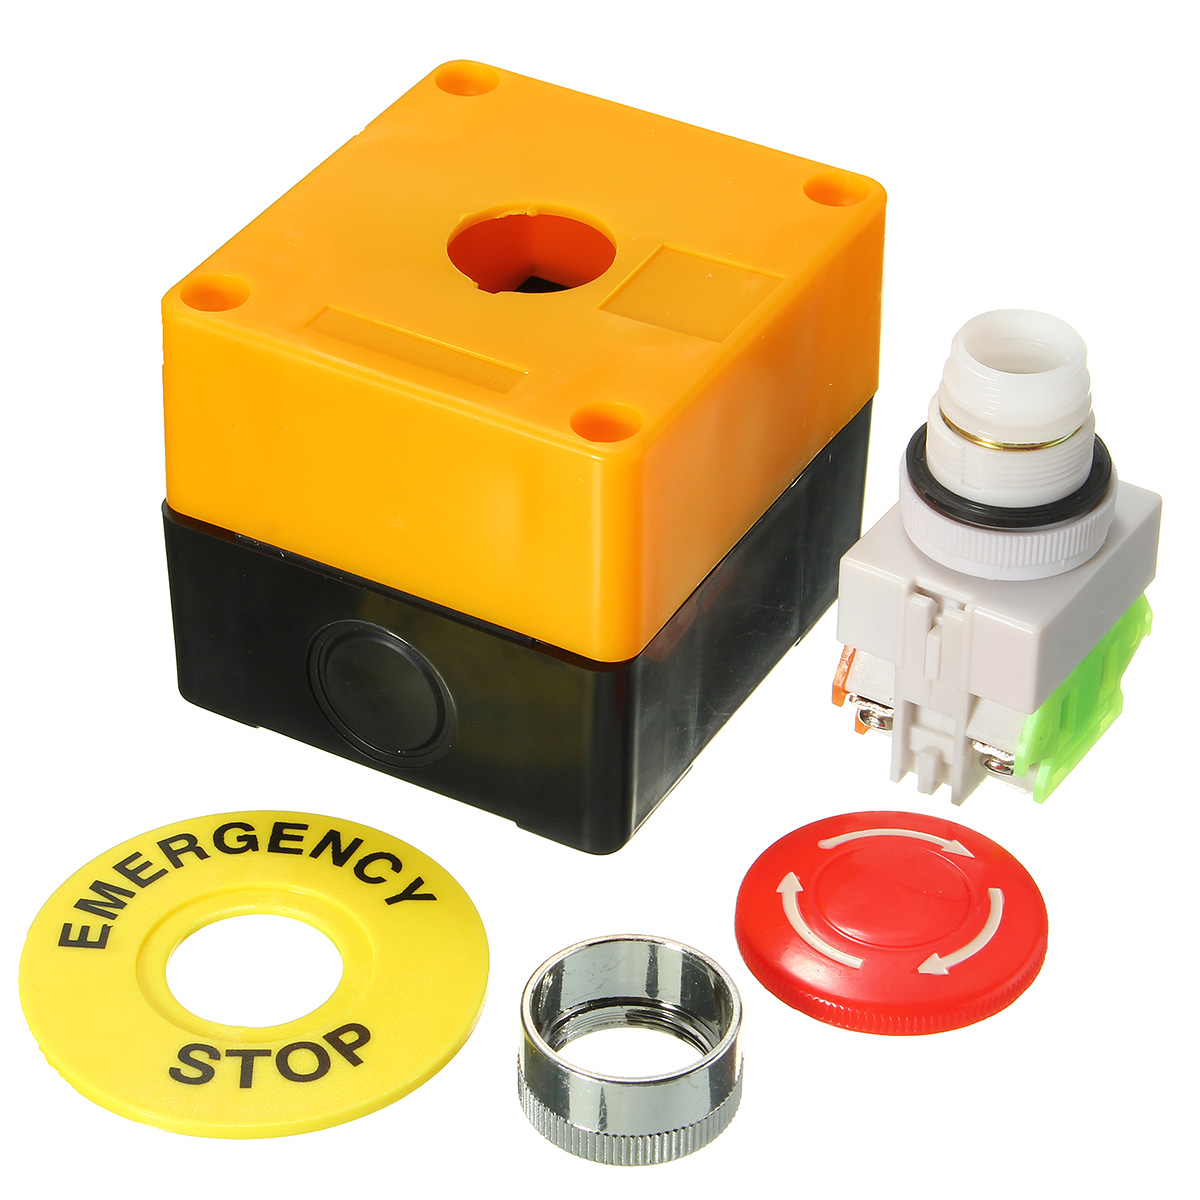 Push Button Switch 1 NO 1 NC 10A 660V Emergency Stop Waterproof